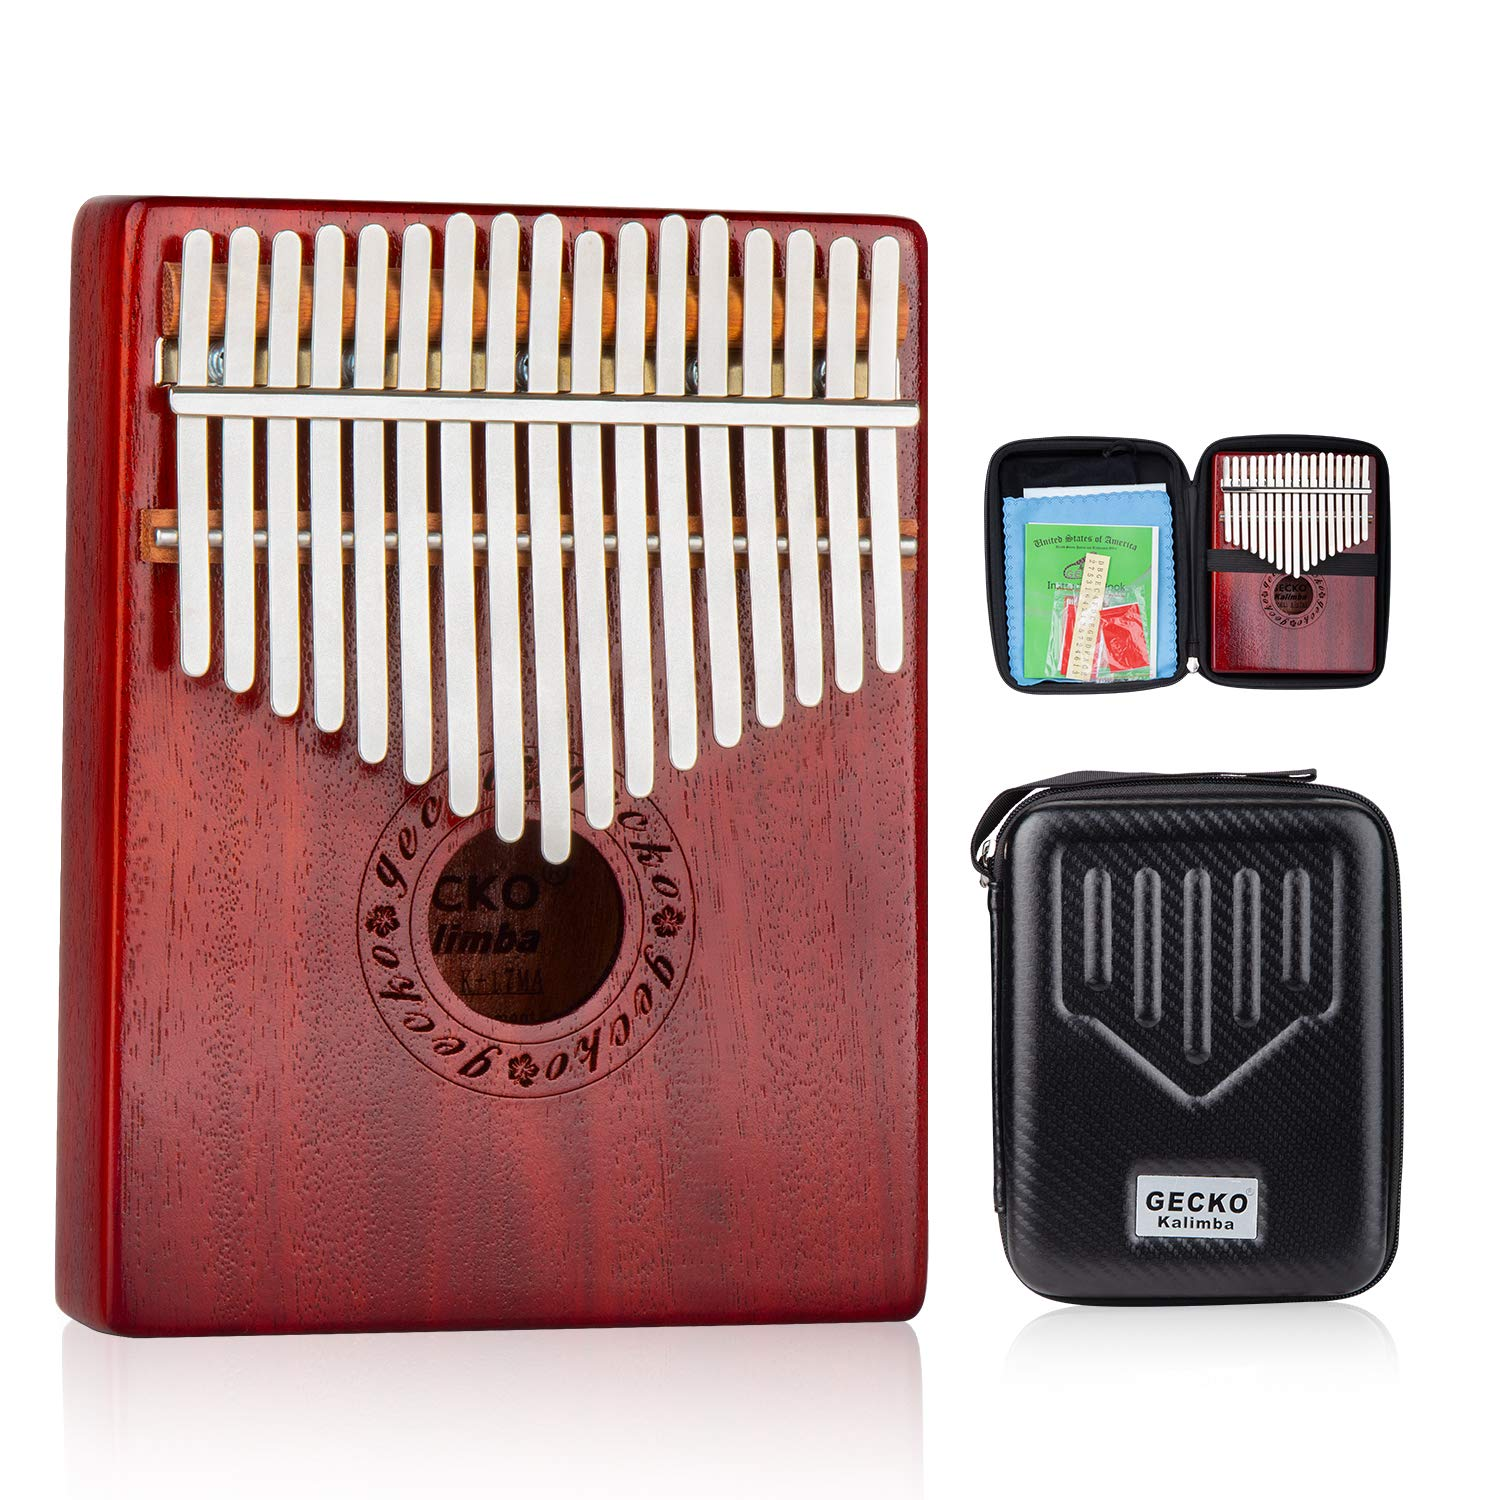 GECKO Kalimba 17 Keys Wide Key Thumb Piano builts-in EVA high-Performance Protective Box, Tuning Hammer and Study Instruction.K17MA by GECKO (Image #1)